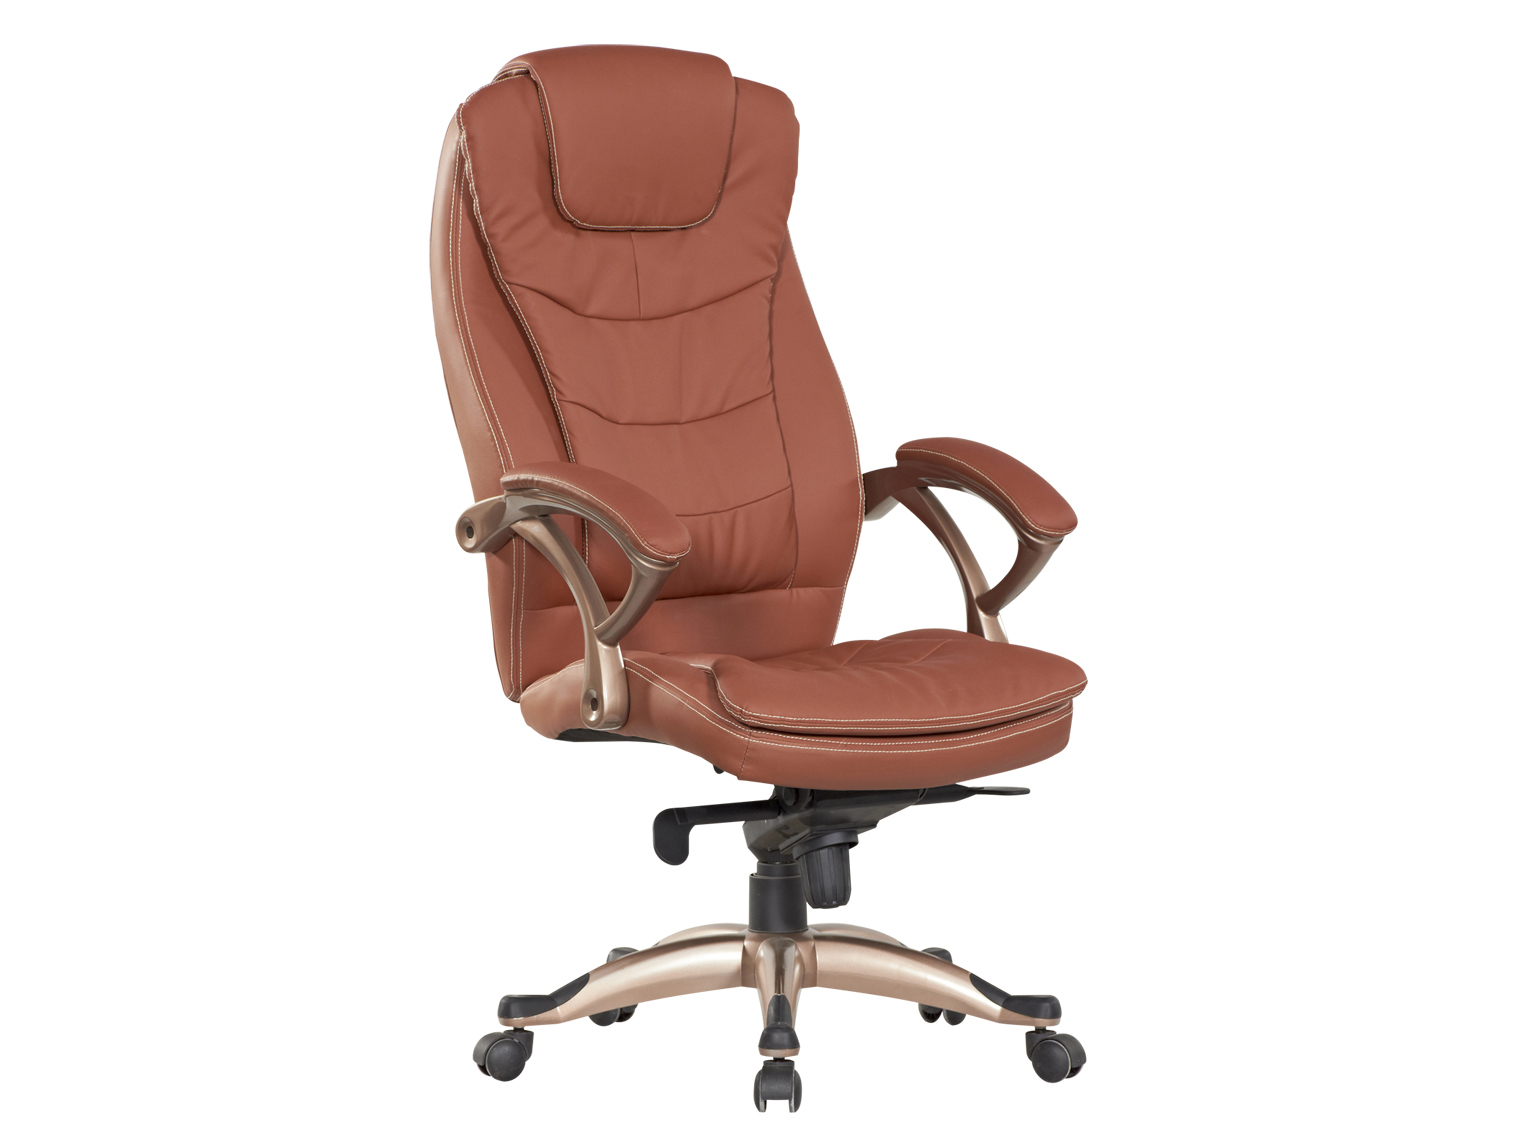 Classical Hot Selling High Quality Dark Brown High Back Office Chair